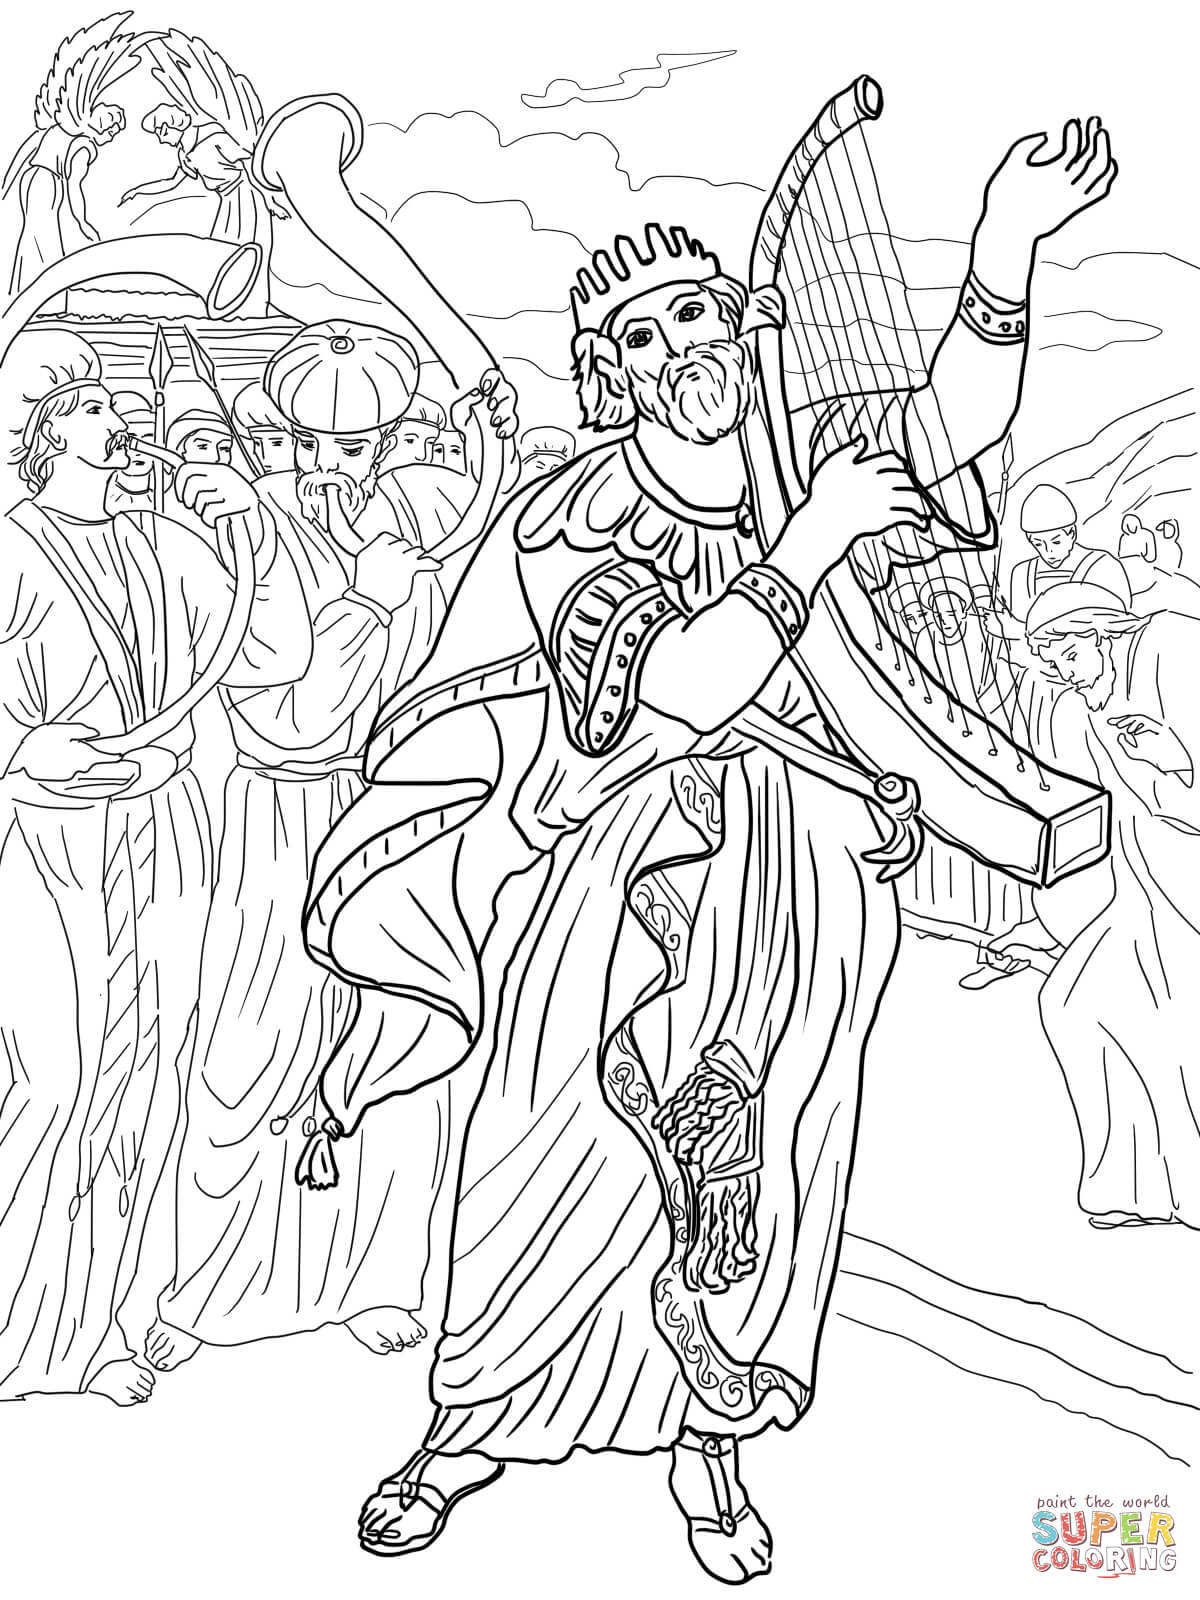 Absalom coloring pages coloring home for King david coloring pages free